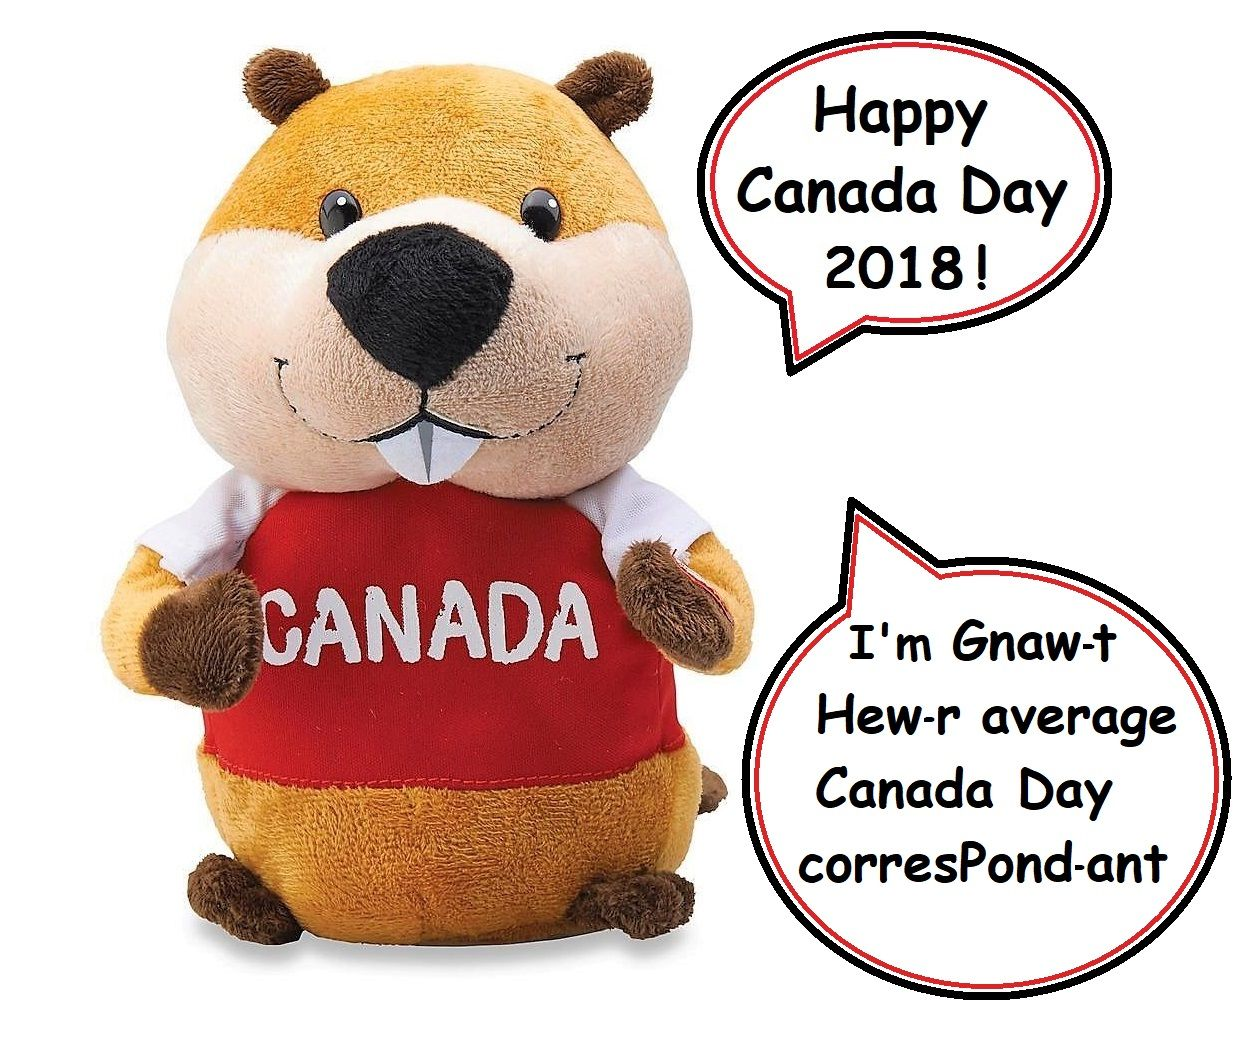 Cute Talking Beaver From Canadian Retail Chain Giant Tiger Awesome Deals Since 1961 Beaver Teddy Bear Teddy [ 1044 x 1240 Pixel ]